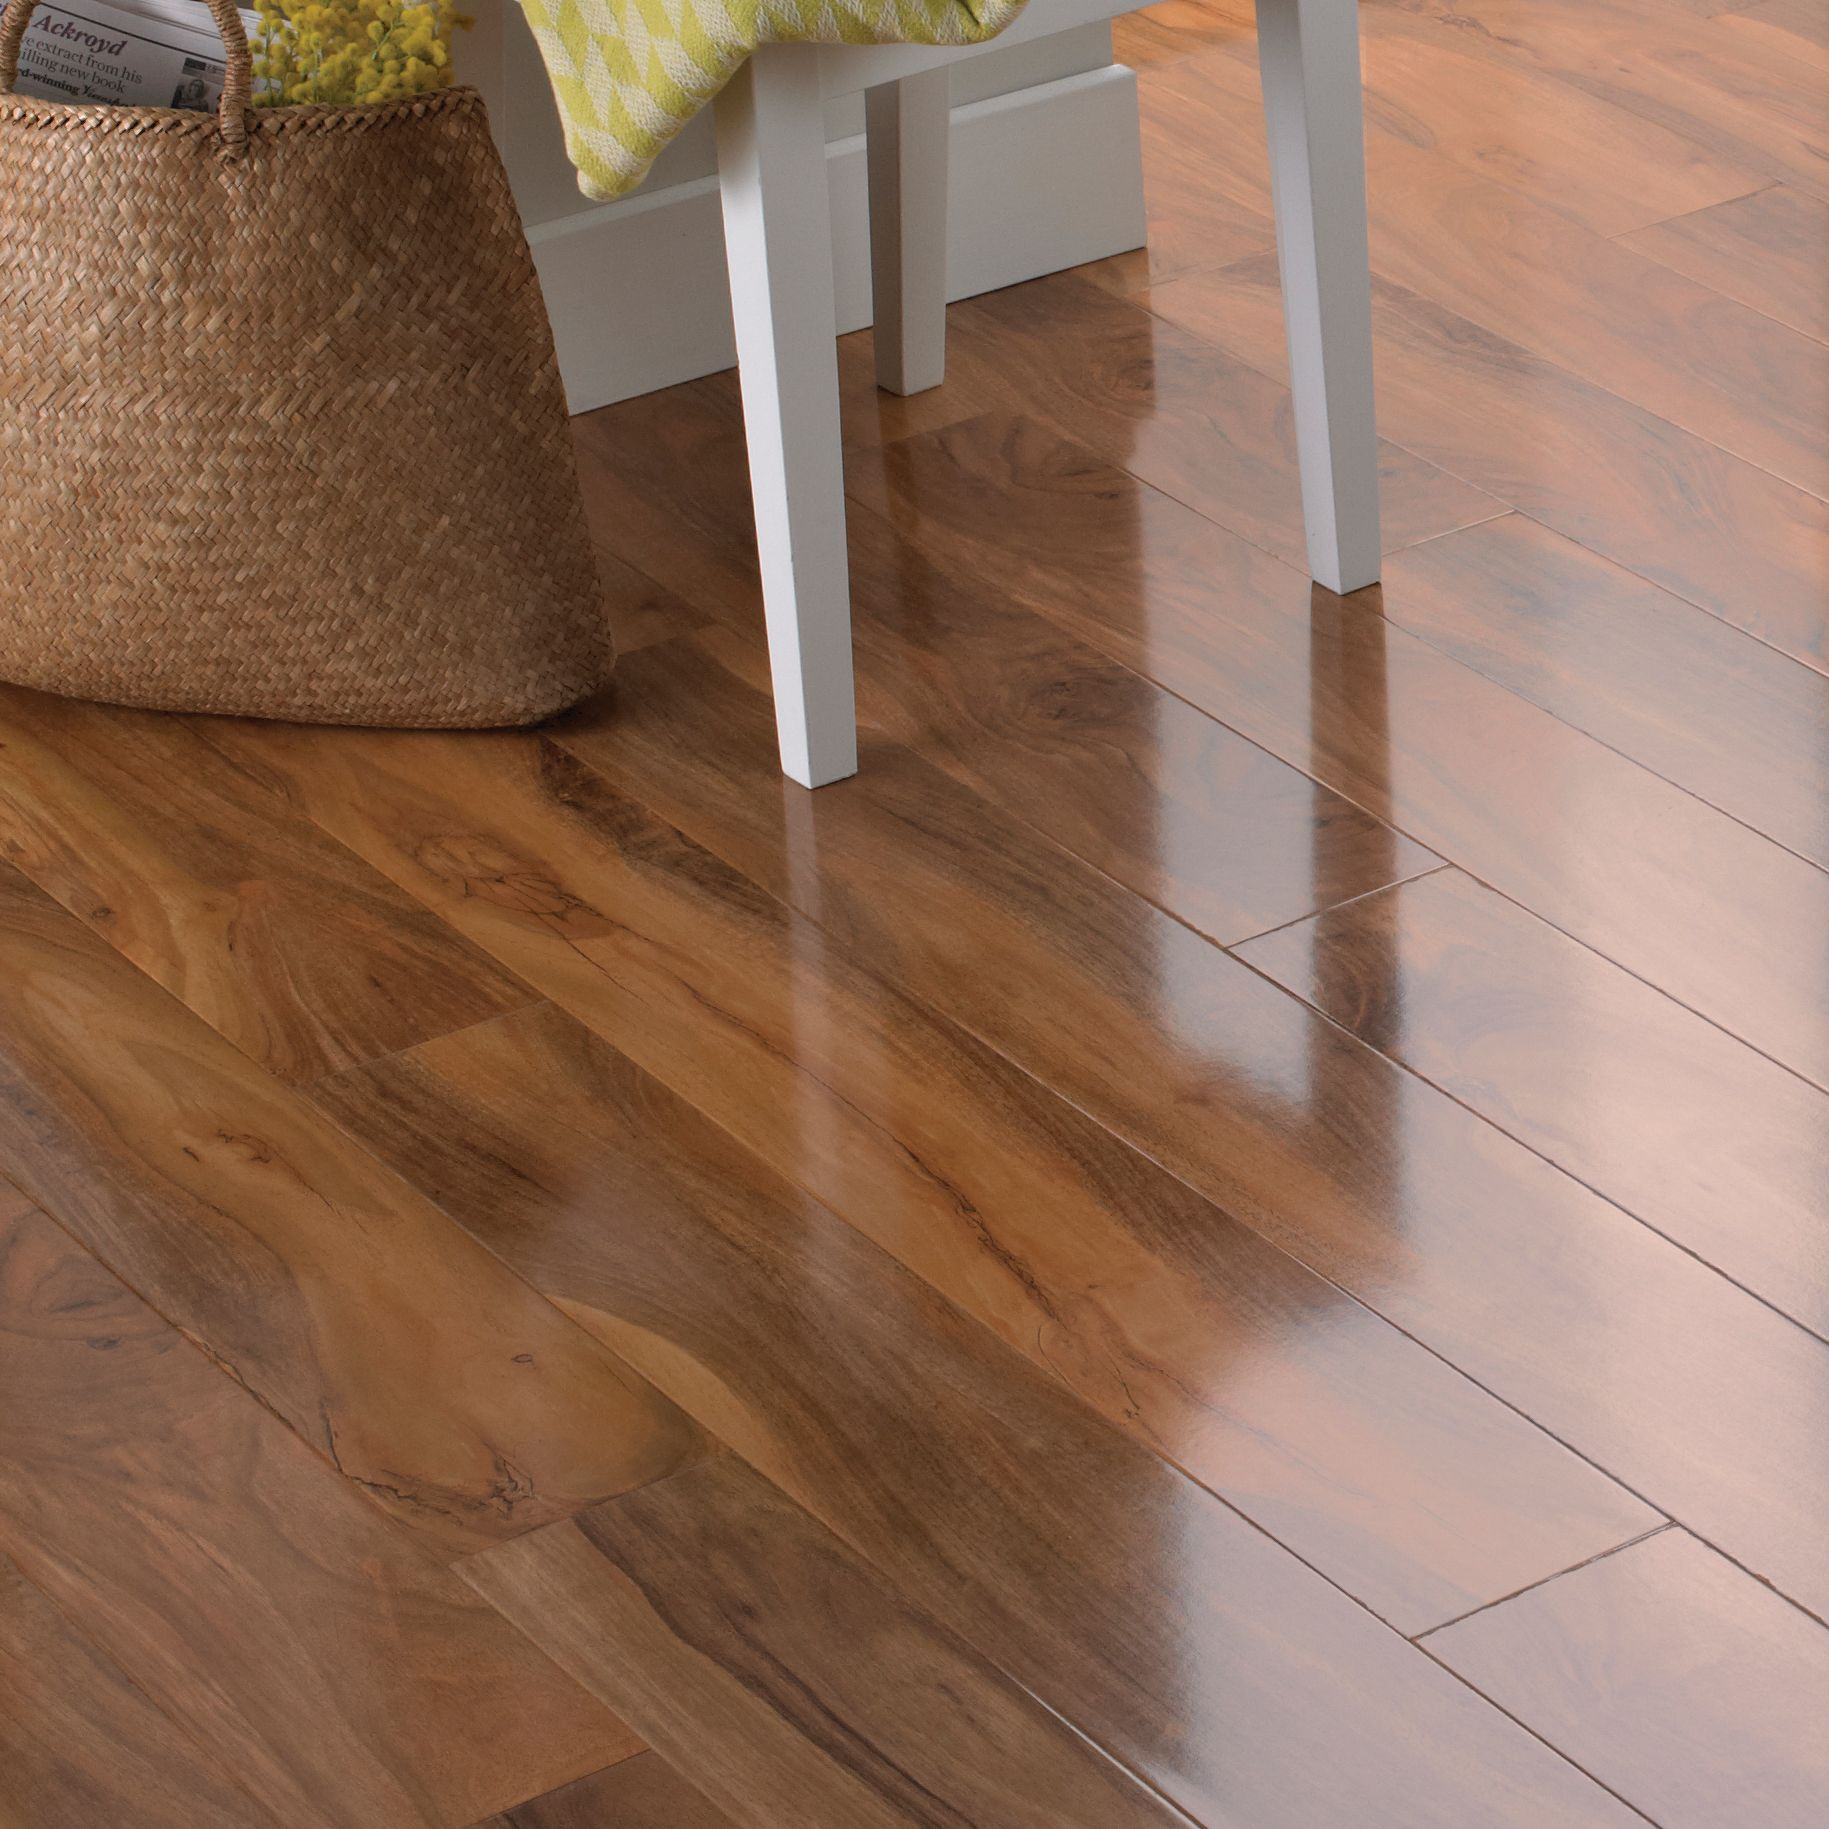 Dolce natural walnut effect laminate flooring m pack for Walnut laminate flooring